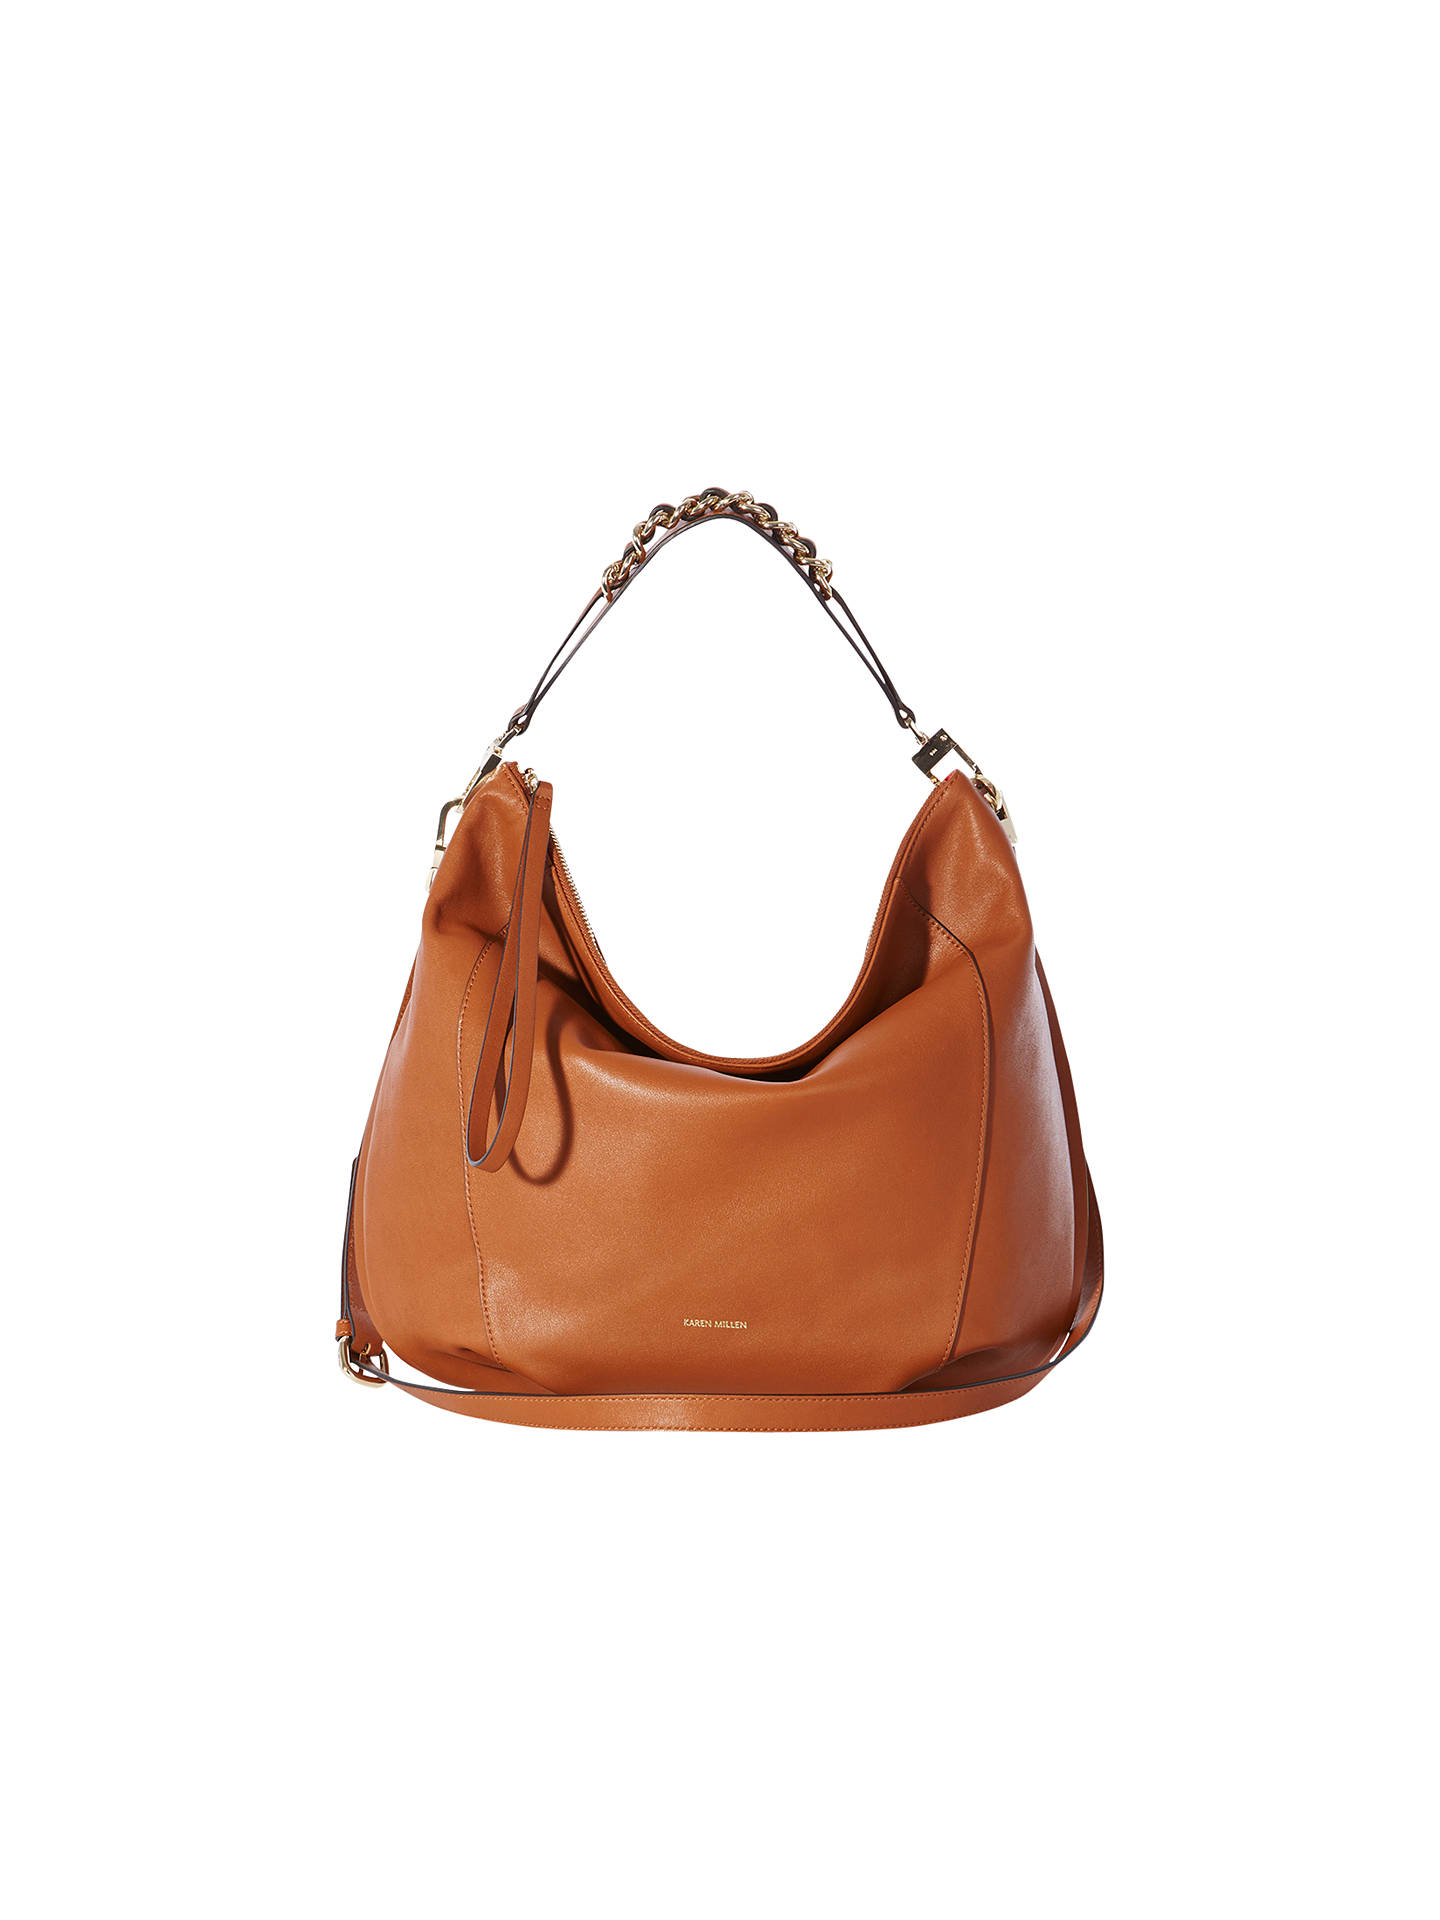 f0414406a3 Buy Karen Millen Leather Chain Sling Shoulder Bag, Tan Online at  johnlewis.com ...